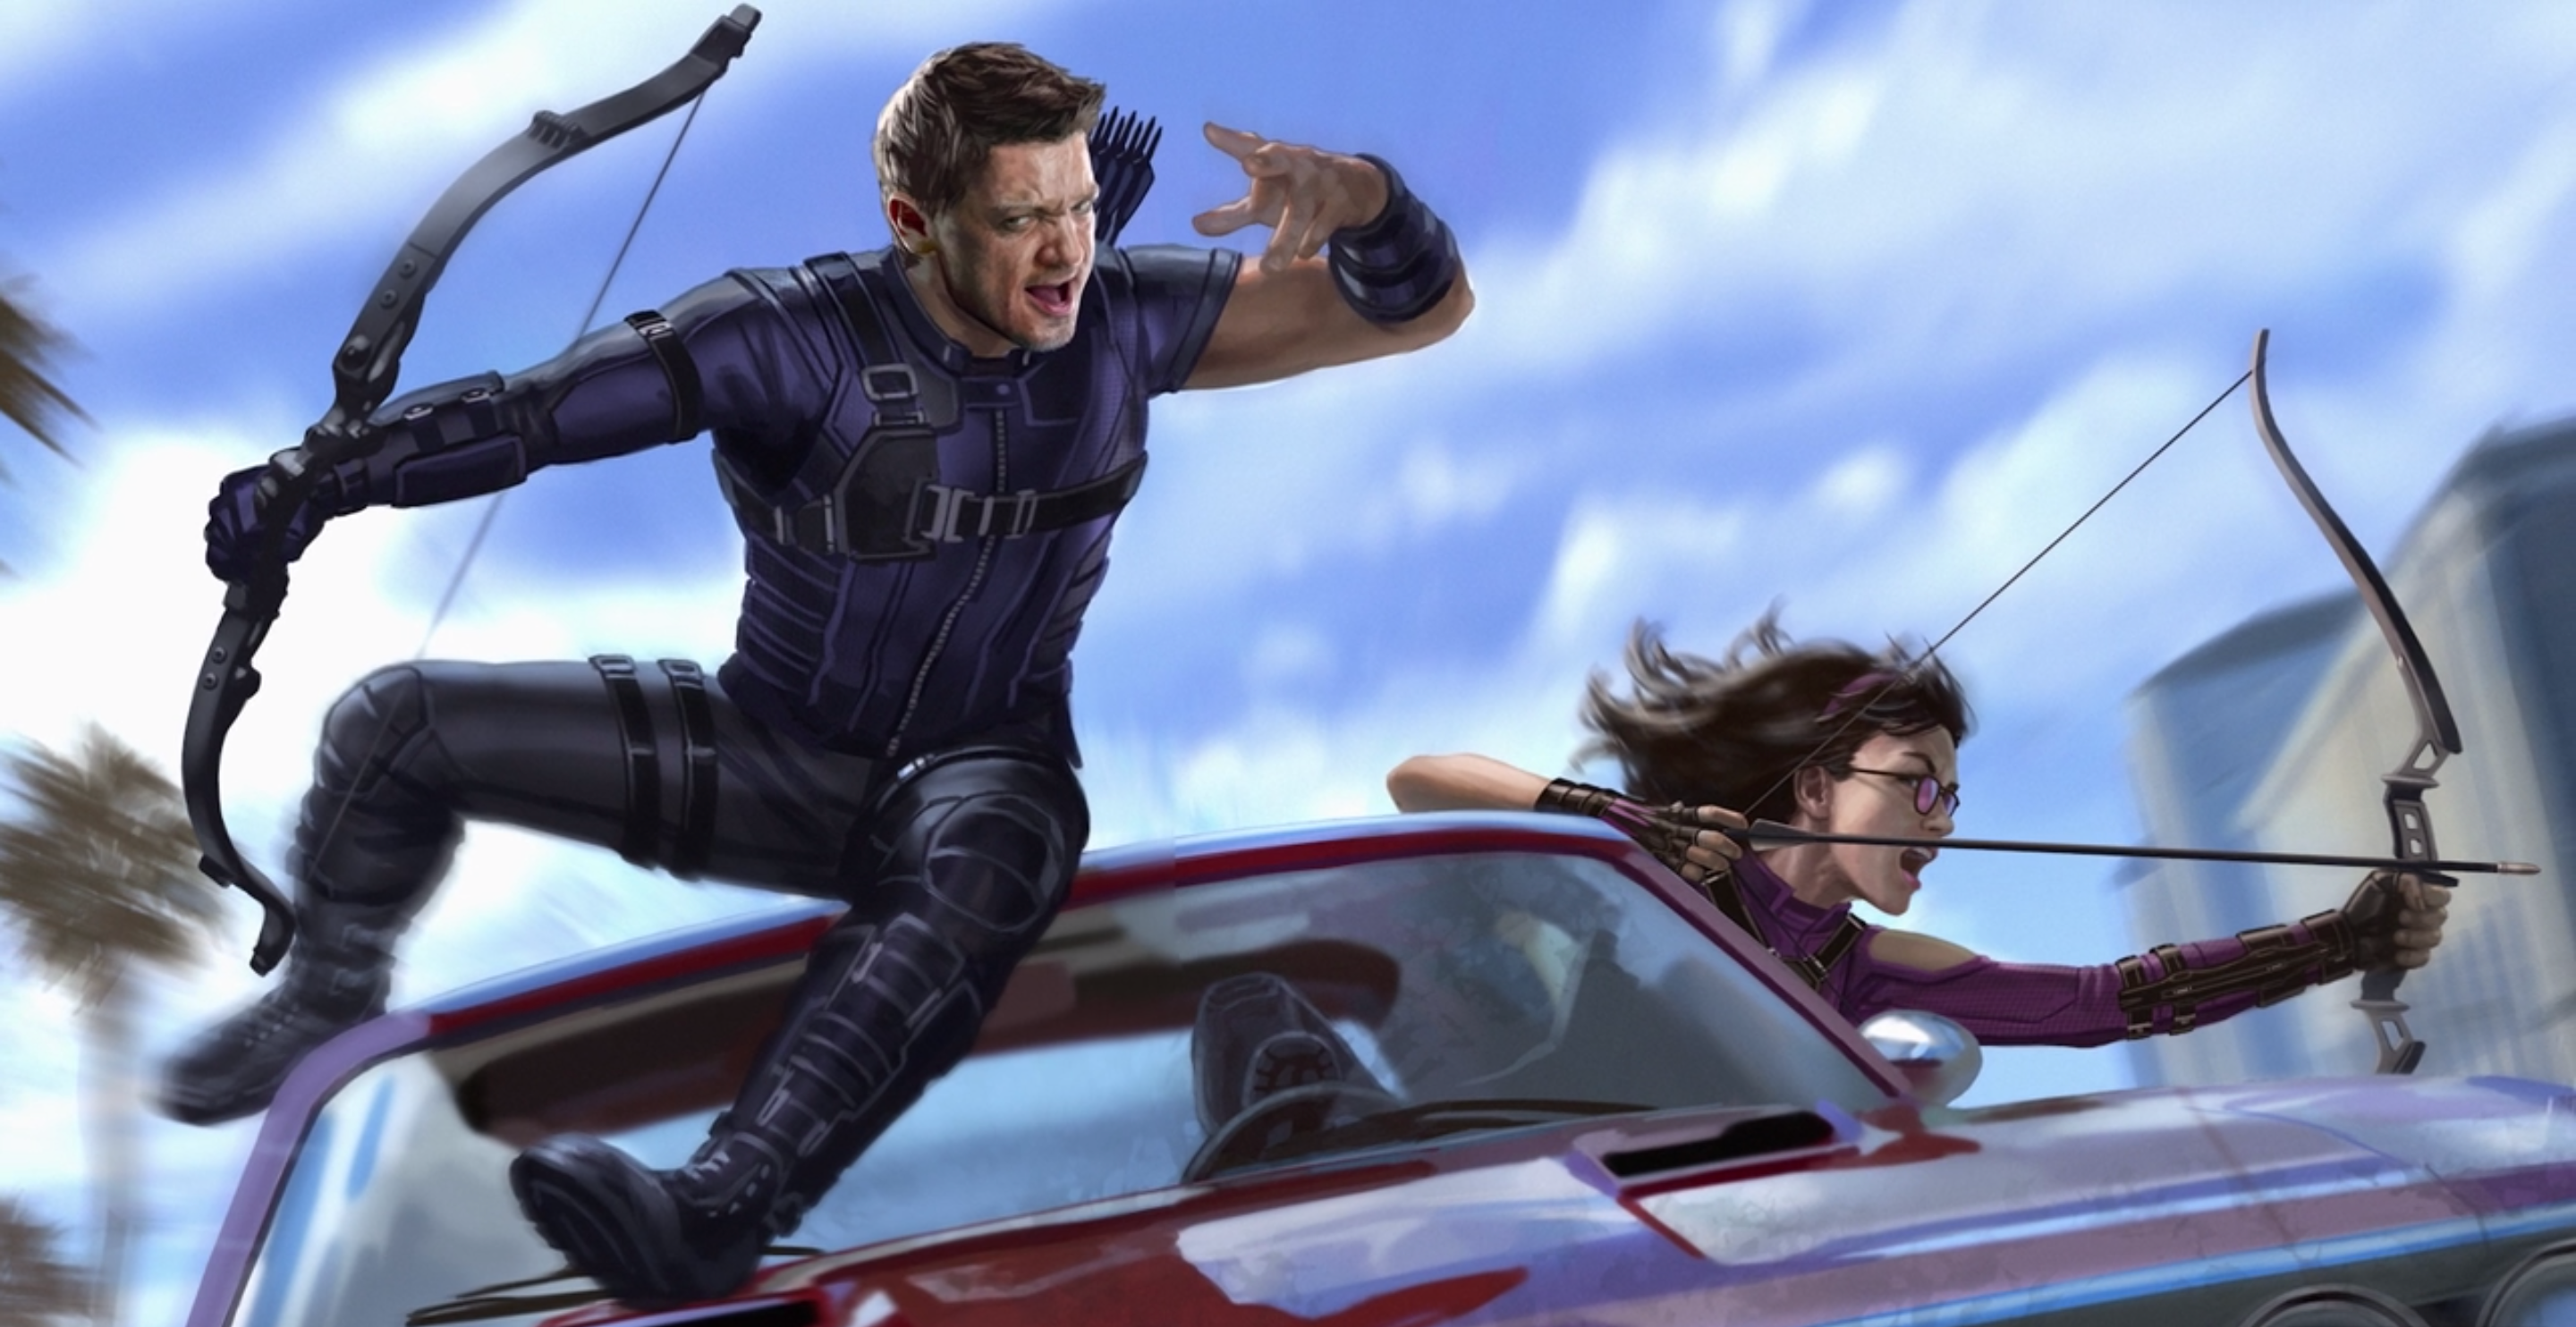 Hawkeye Concept Art Reveals First Look at Marvel Disney Plus Show | Collider